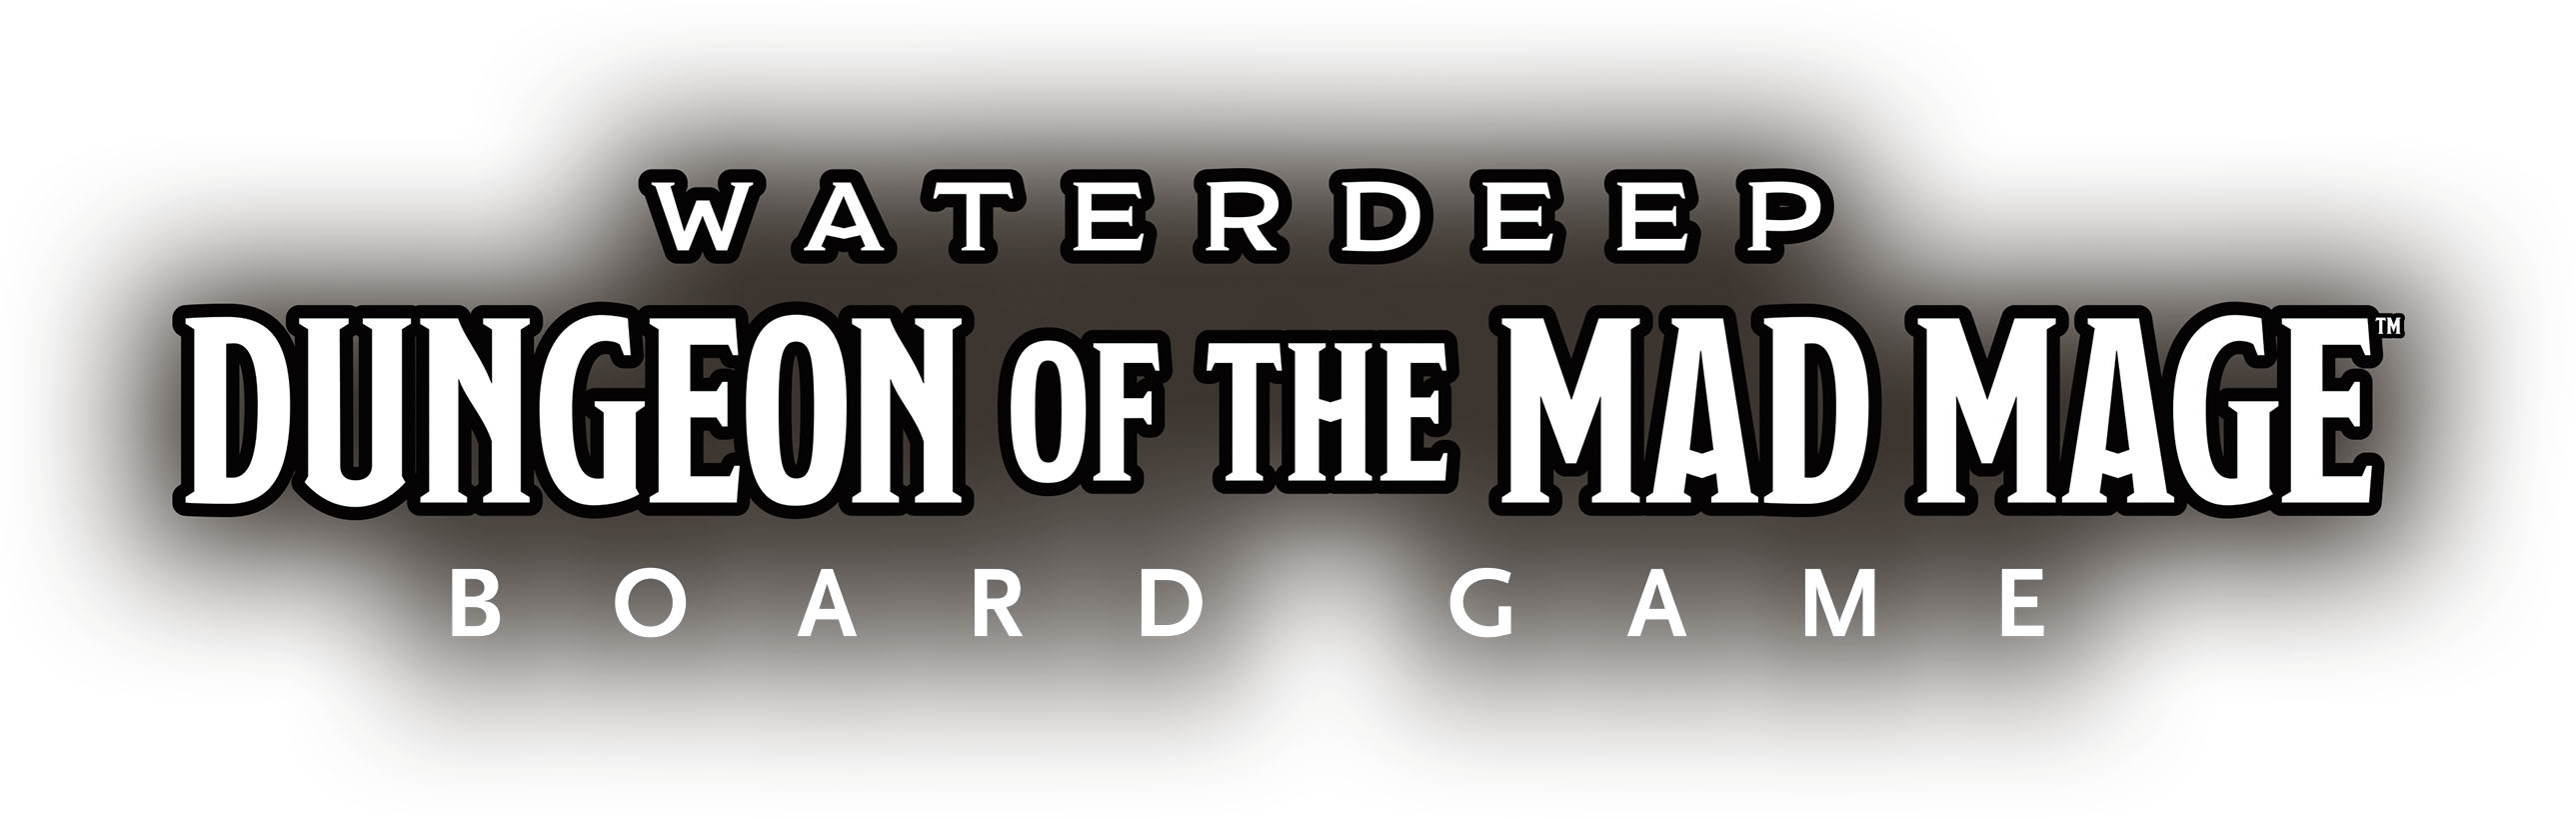 GTM #229 - Waterdeep: Dungeon of the Mad Mage Board Game